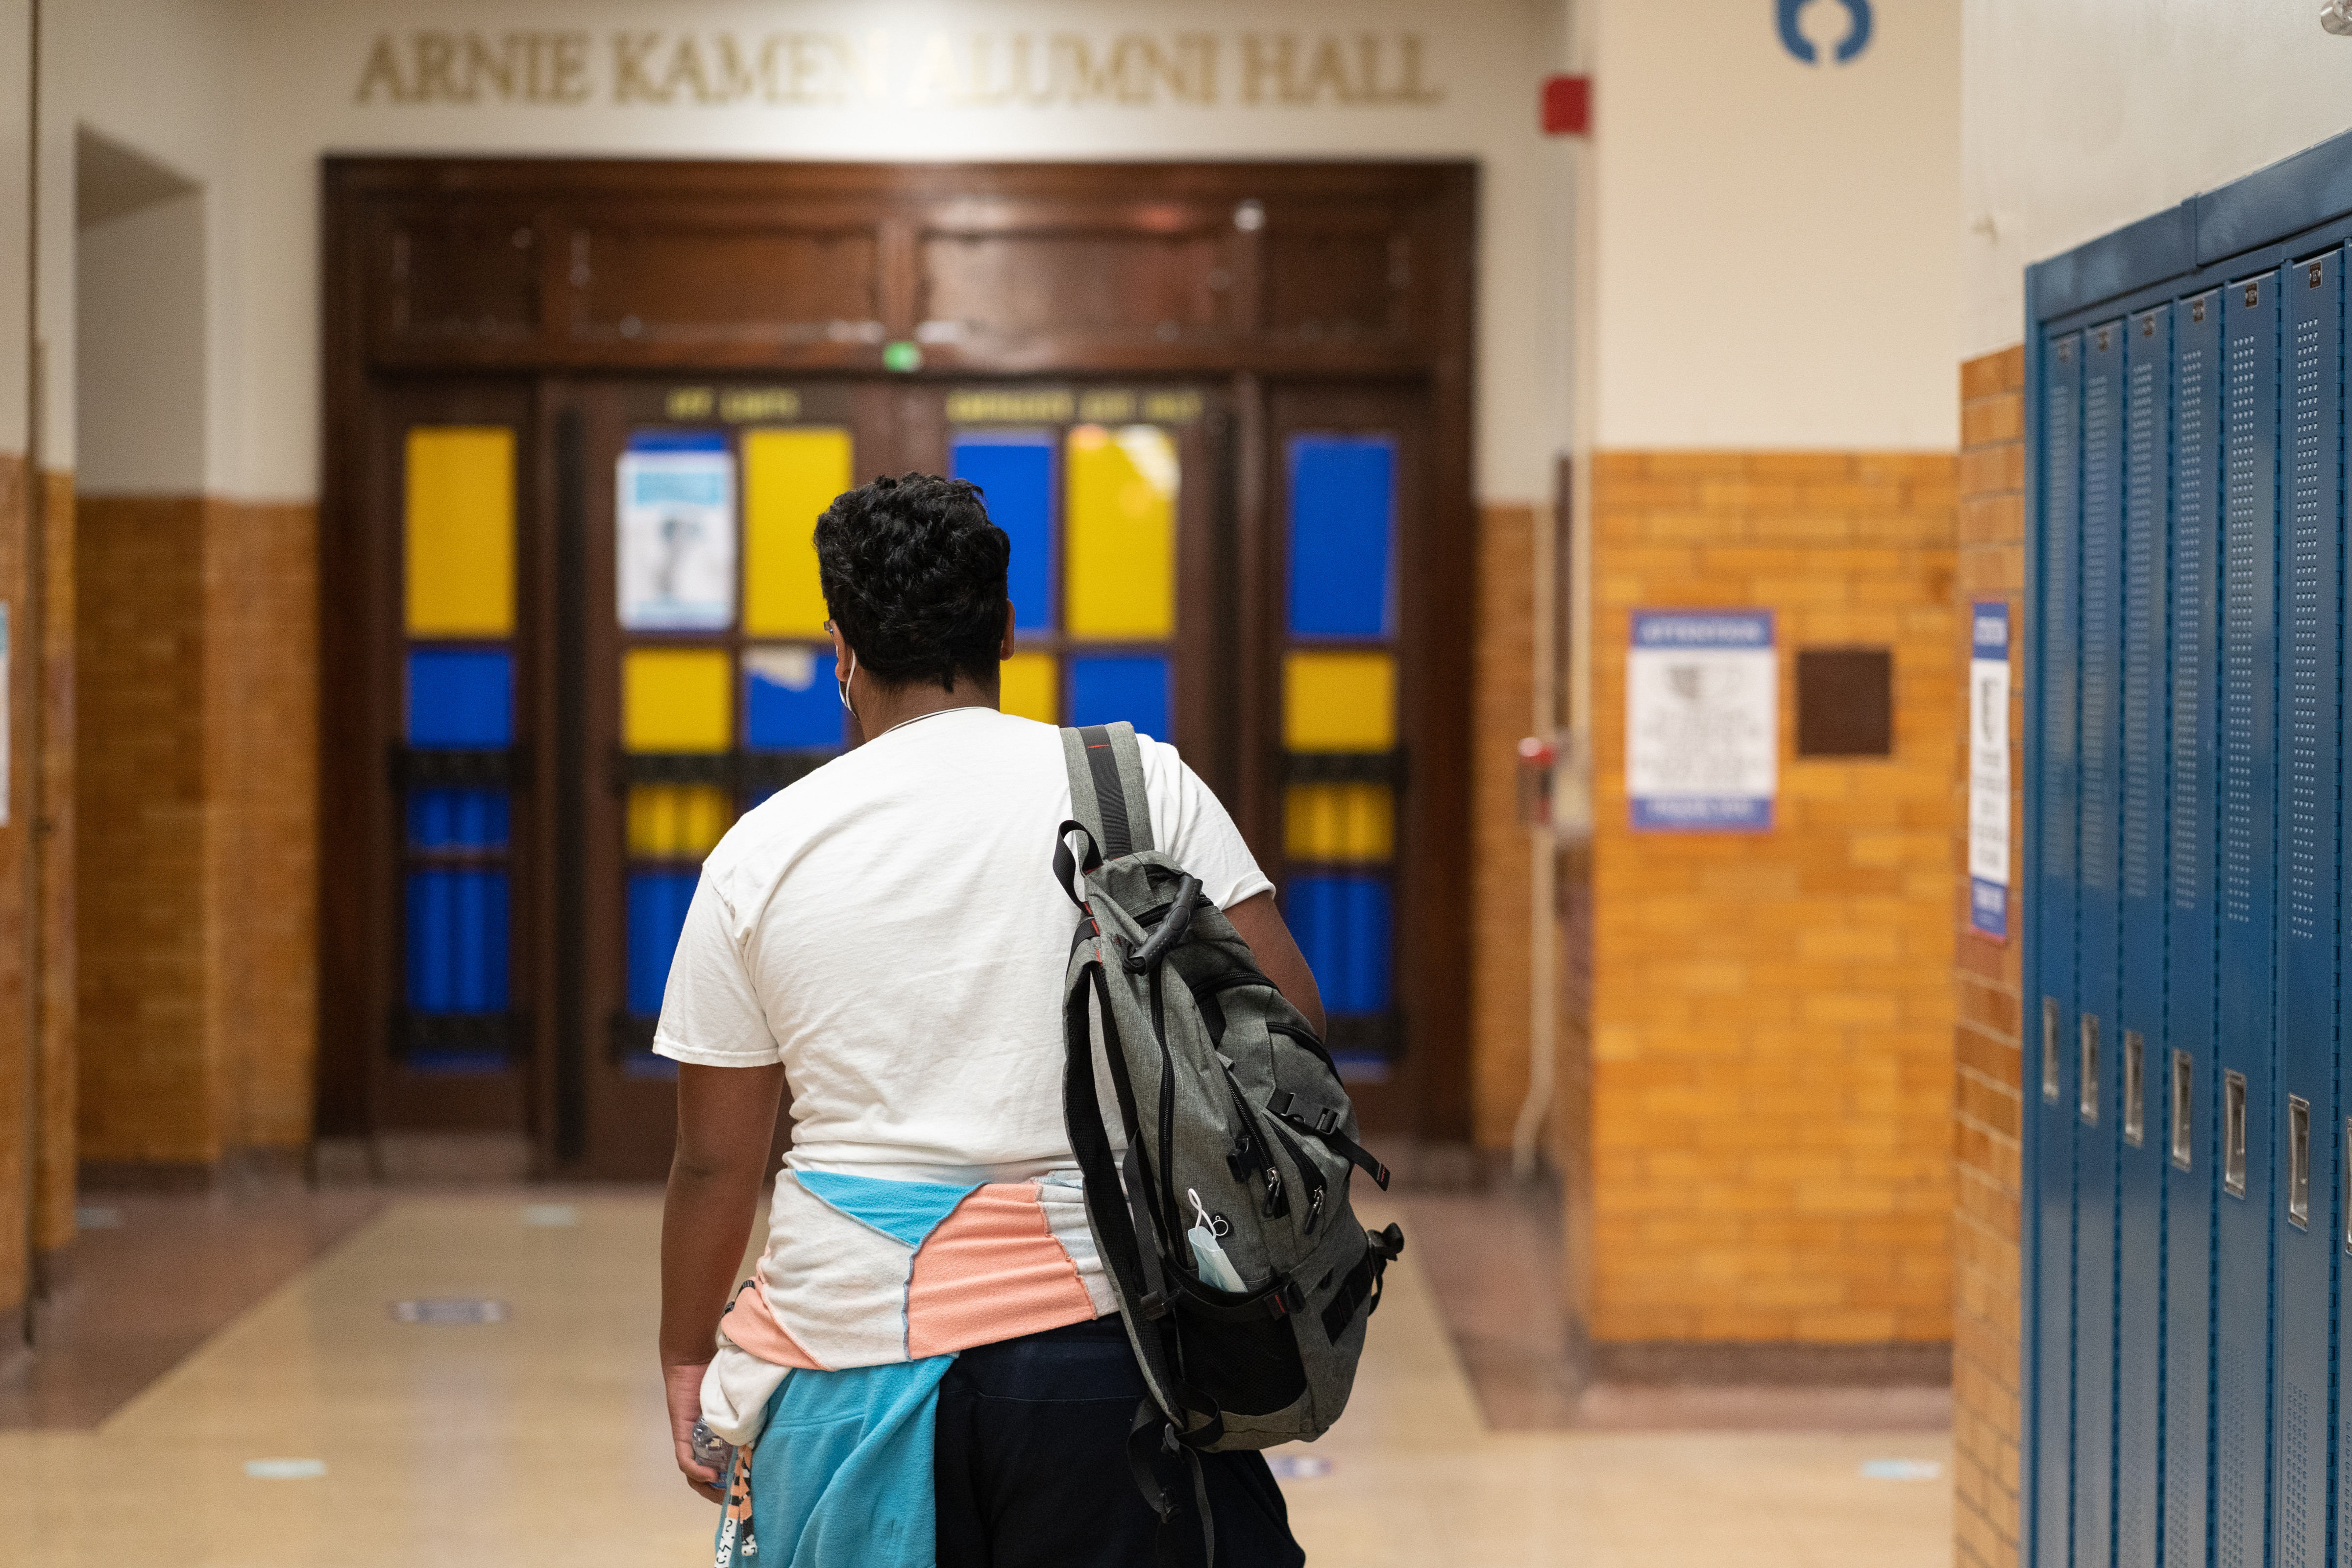 A young man walks through a school hallways, wearing a backpack, white shirt, and blue, pink, and white windbreaker tied around his waist.